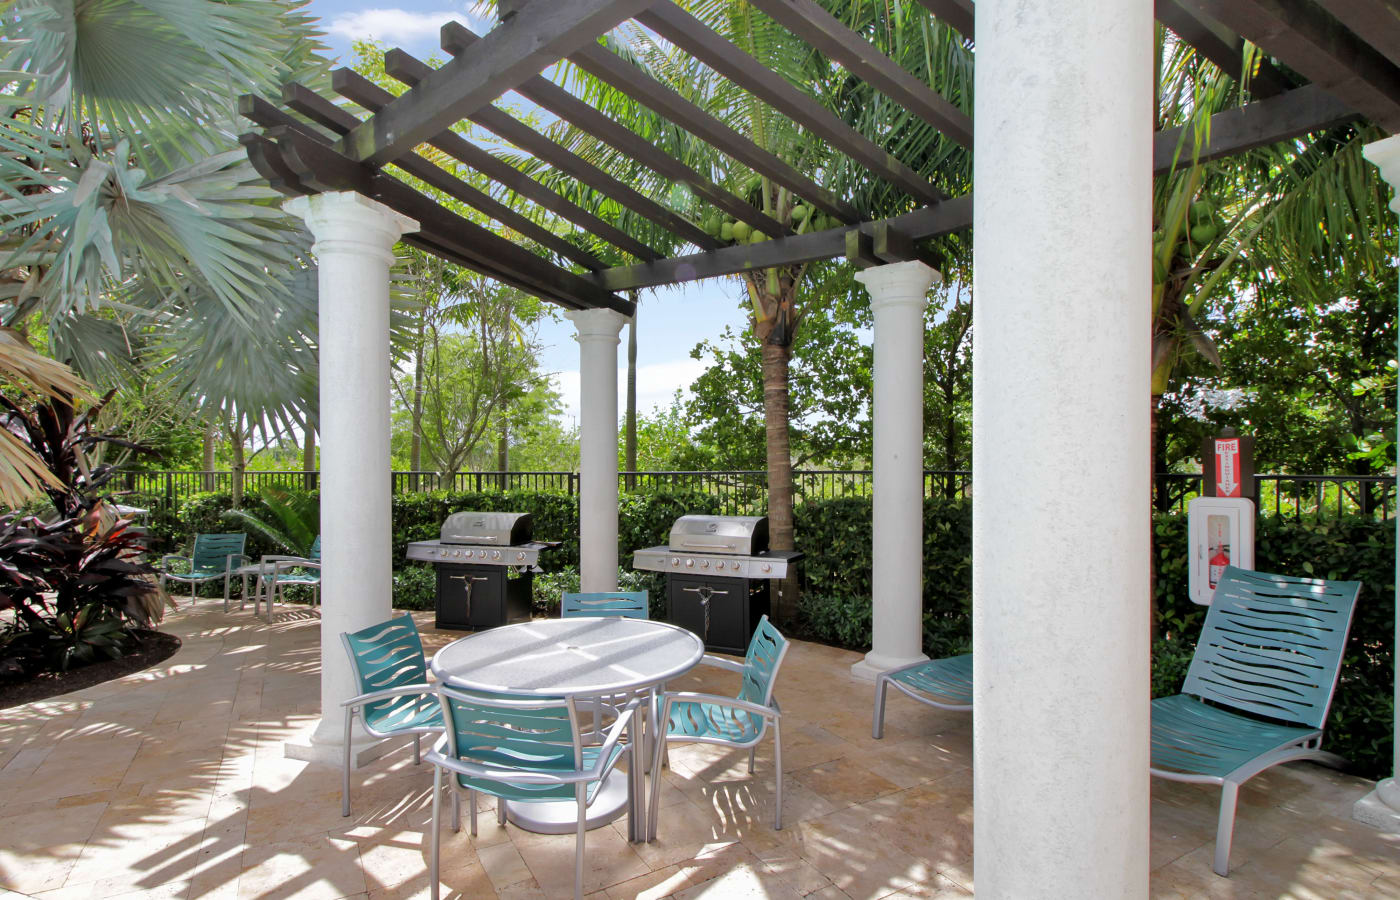 Pergola providing shade for seating area near barbecues at IMT Miramar in Miramar, FL